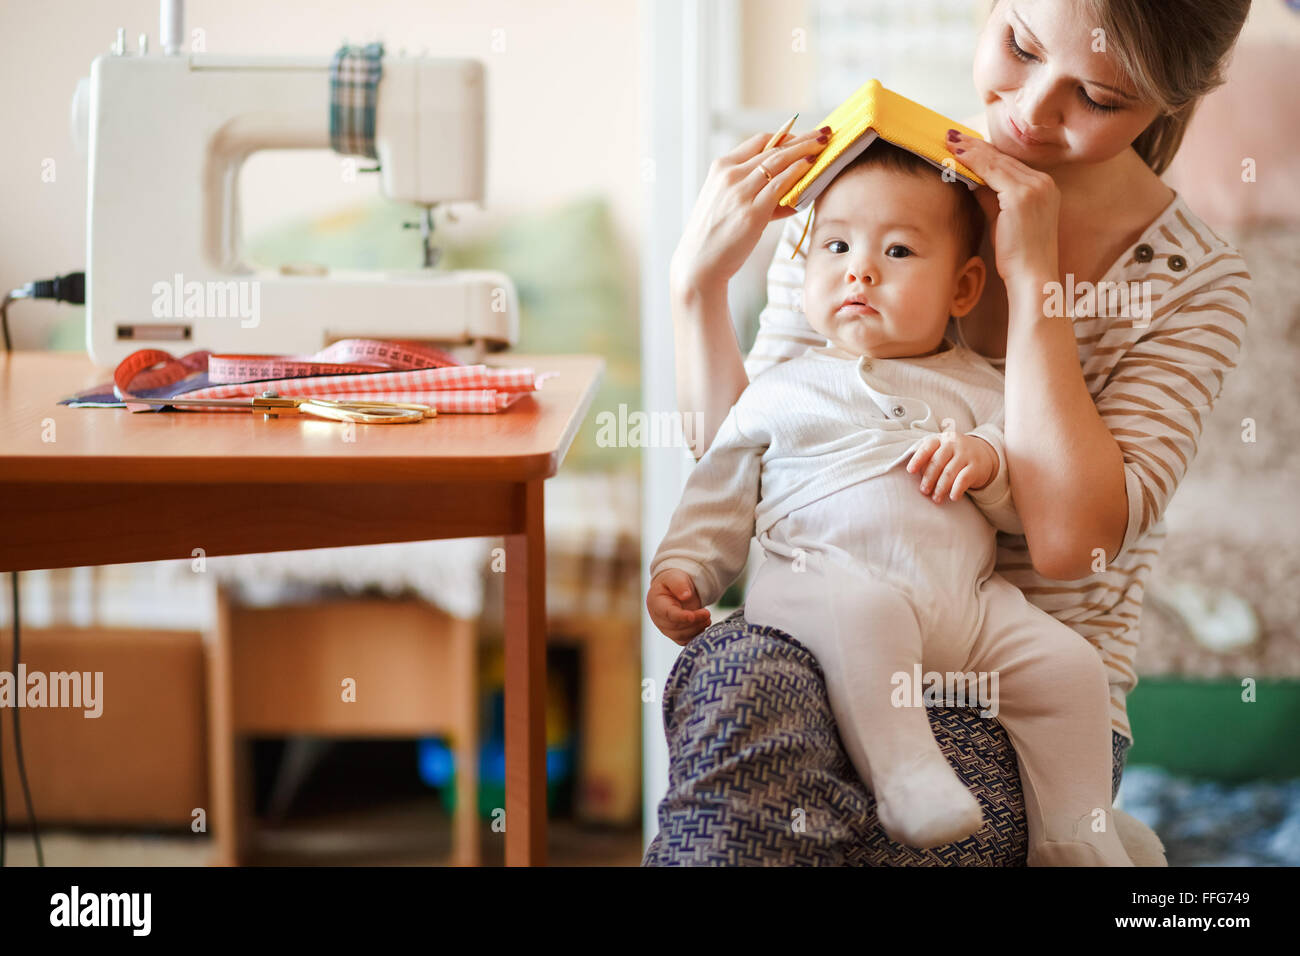 baby sitter stockfotos baby sitter bilder alamy. Black Bedroom Furniture Sets. Home Design Ideas